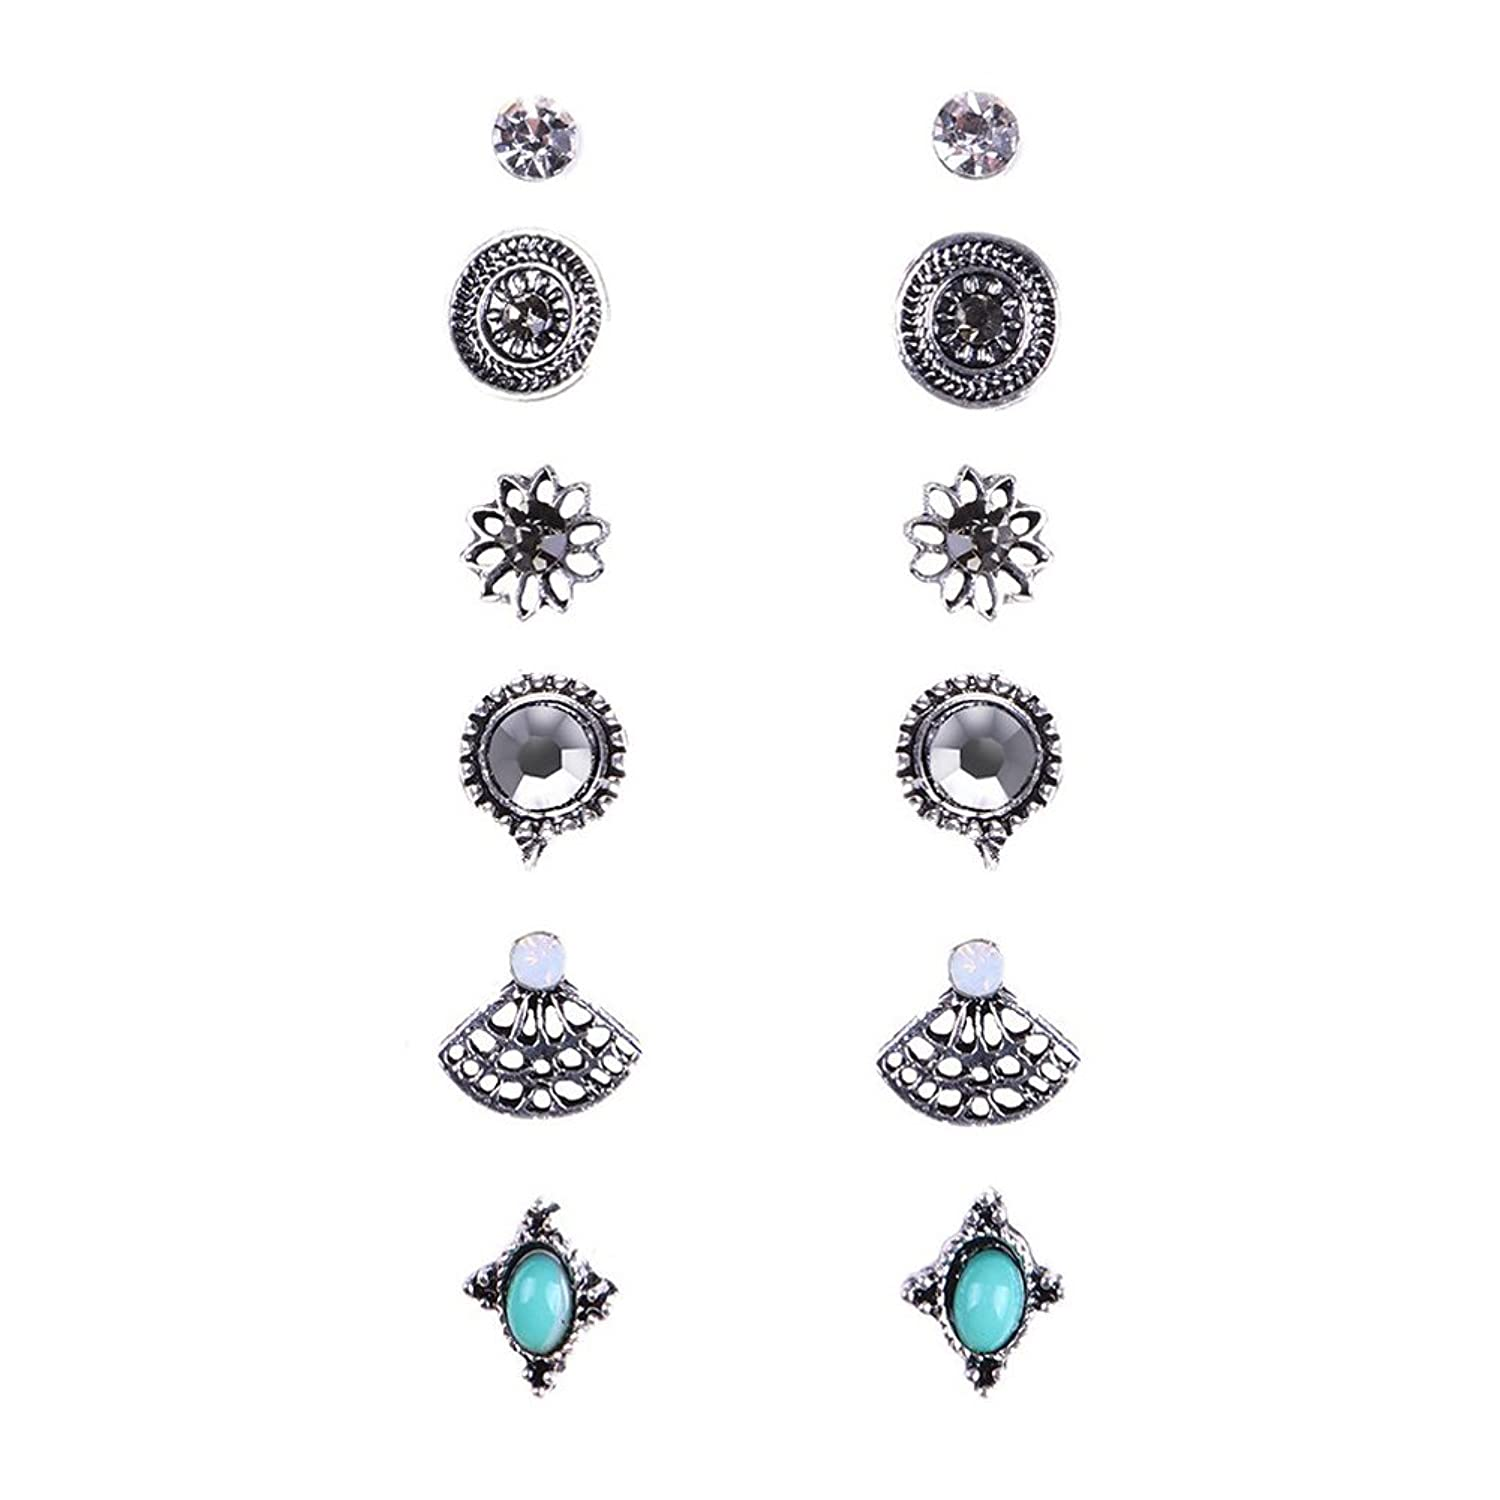 21 Pairs of Cute Earrings To Shop RightNow pics